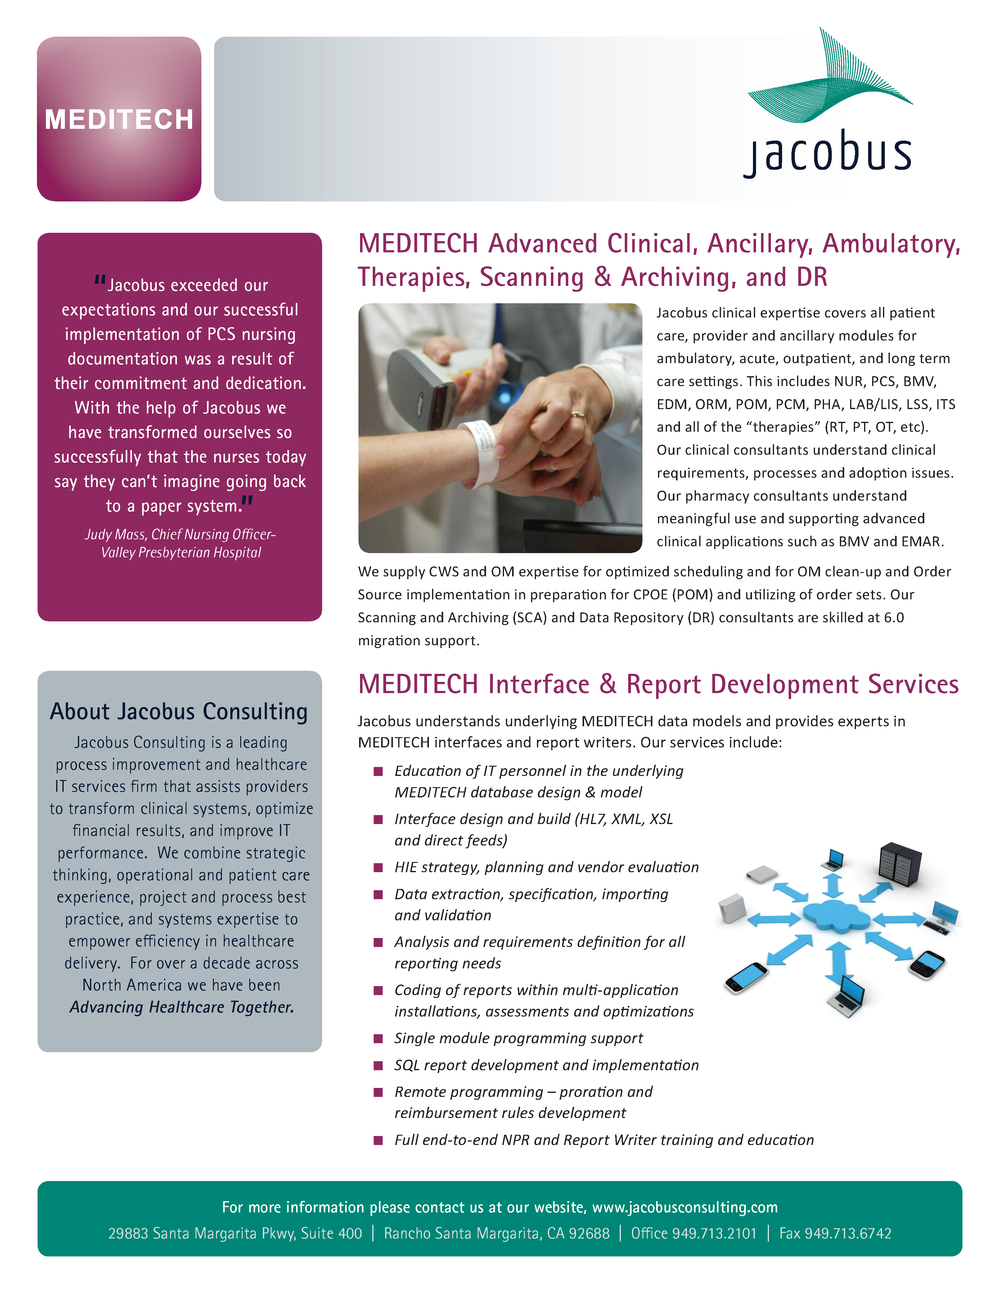 JC_MEDITECHServices_PRINT_Page_2.png